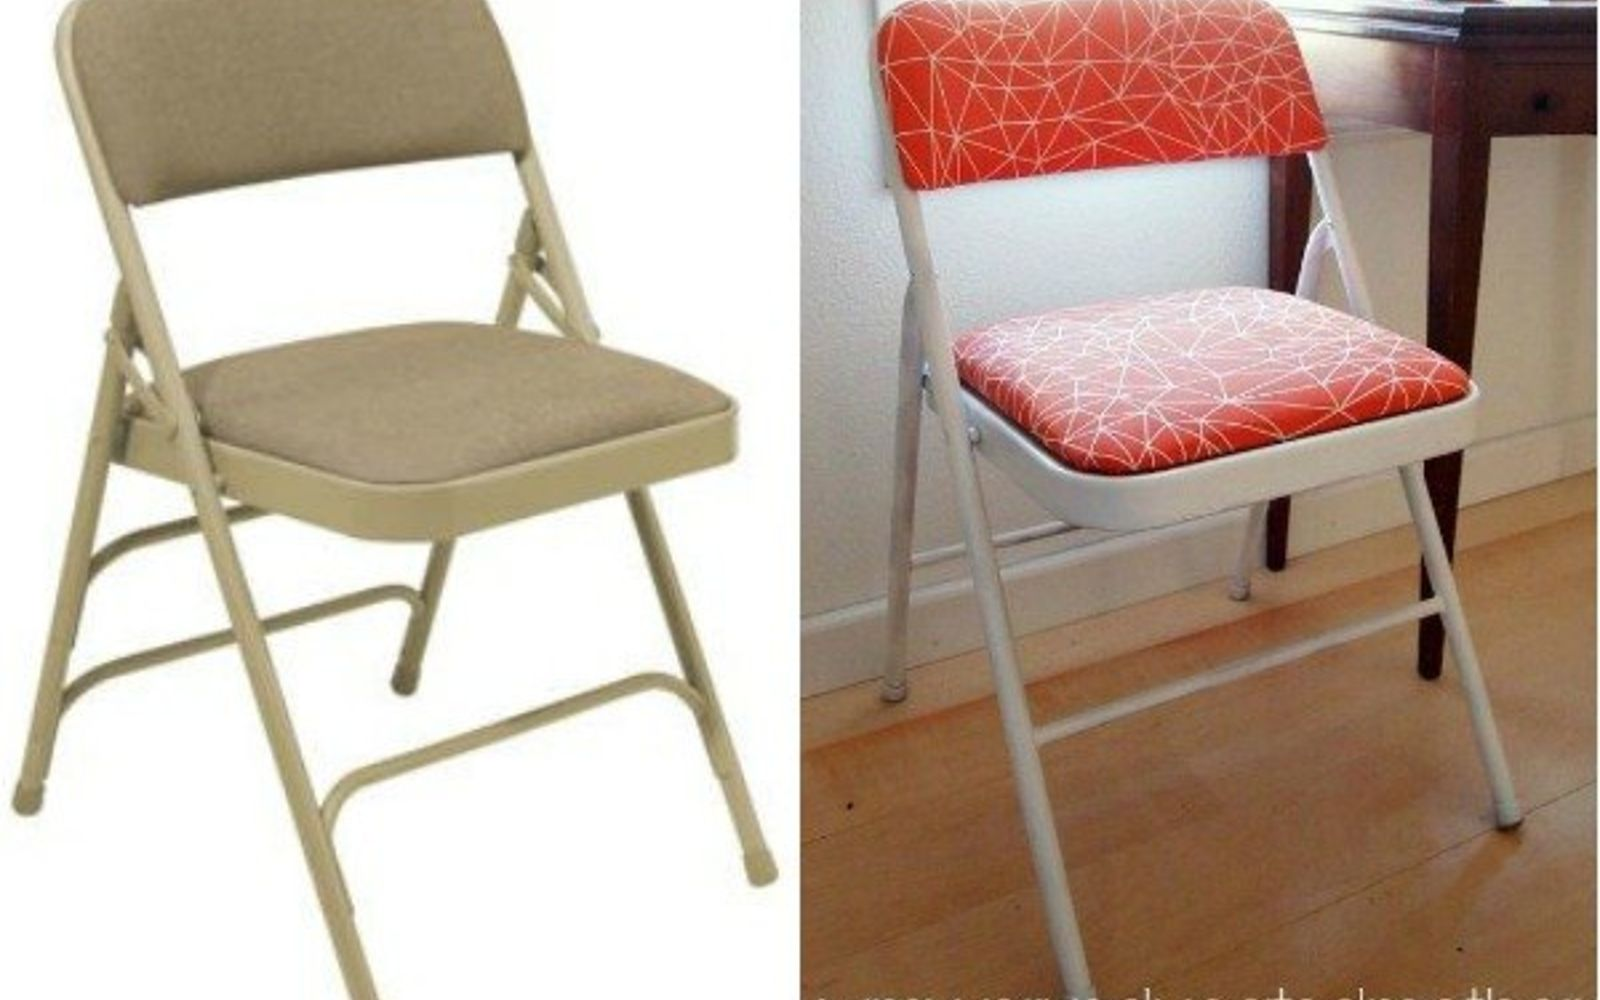 s 14 shocking furniture transformations using fabric, painted furniture, reupholster, Simple and Sunny New Look for a Folding Chair